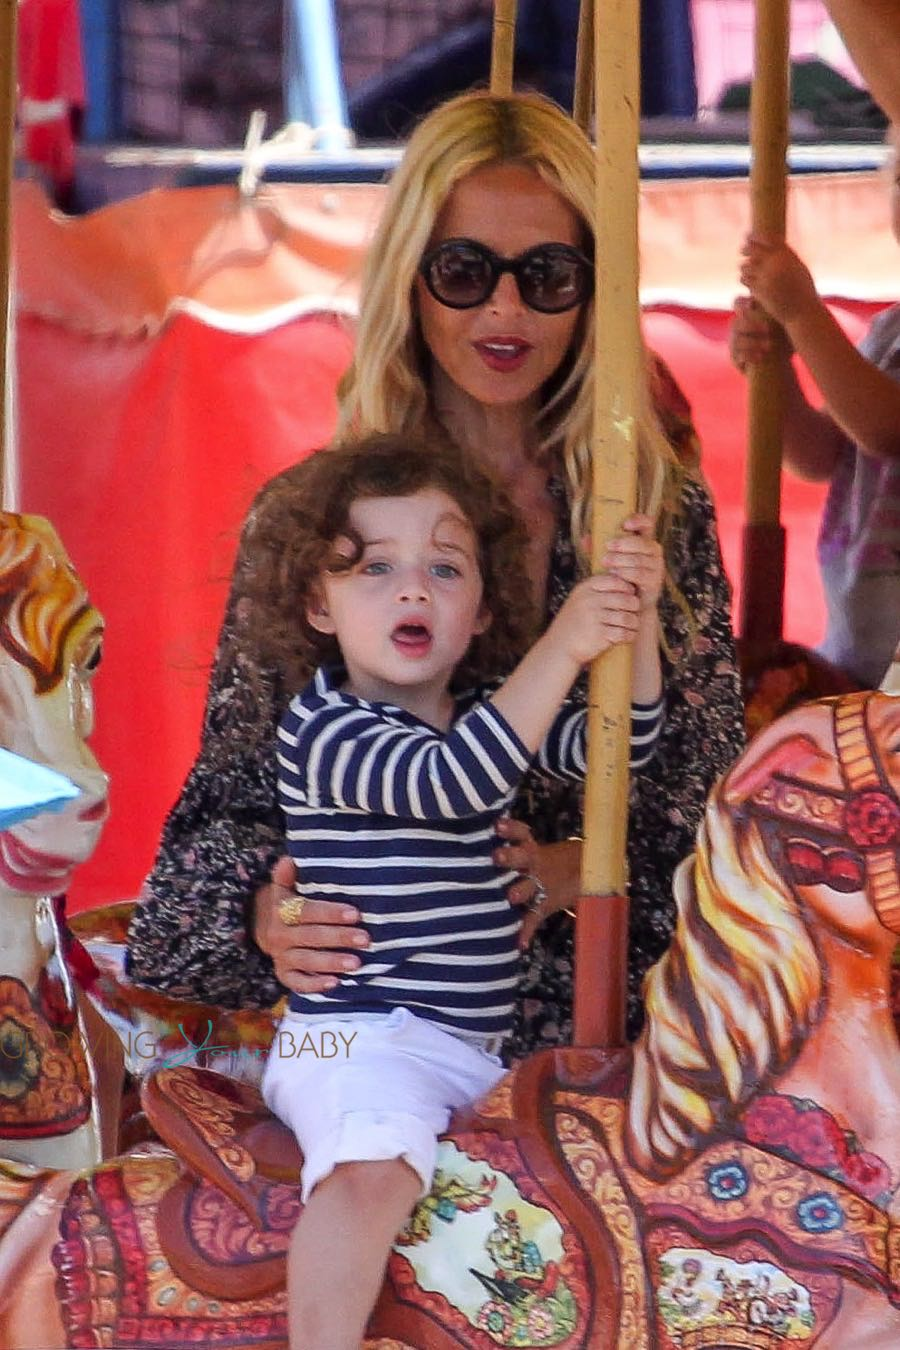 Rachel Zoe with son Kai on the carousel at the malibu Chili Cook out